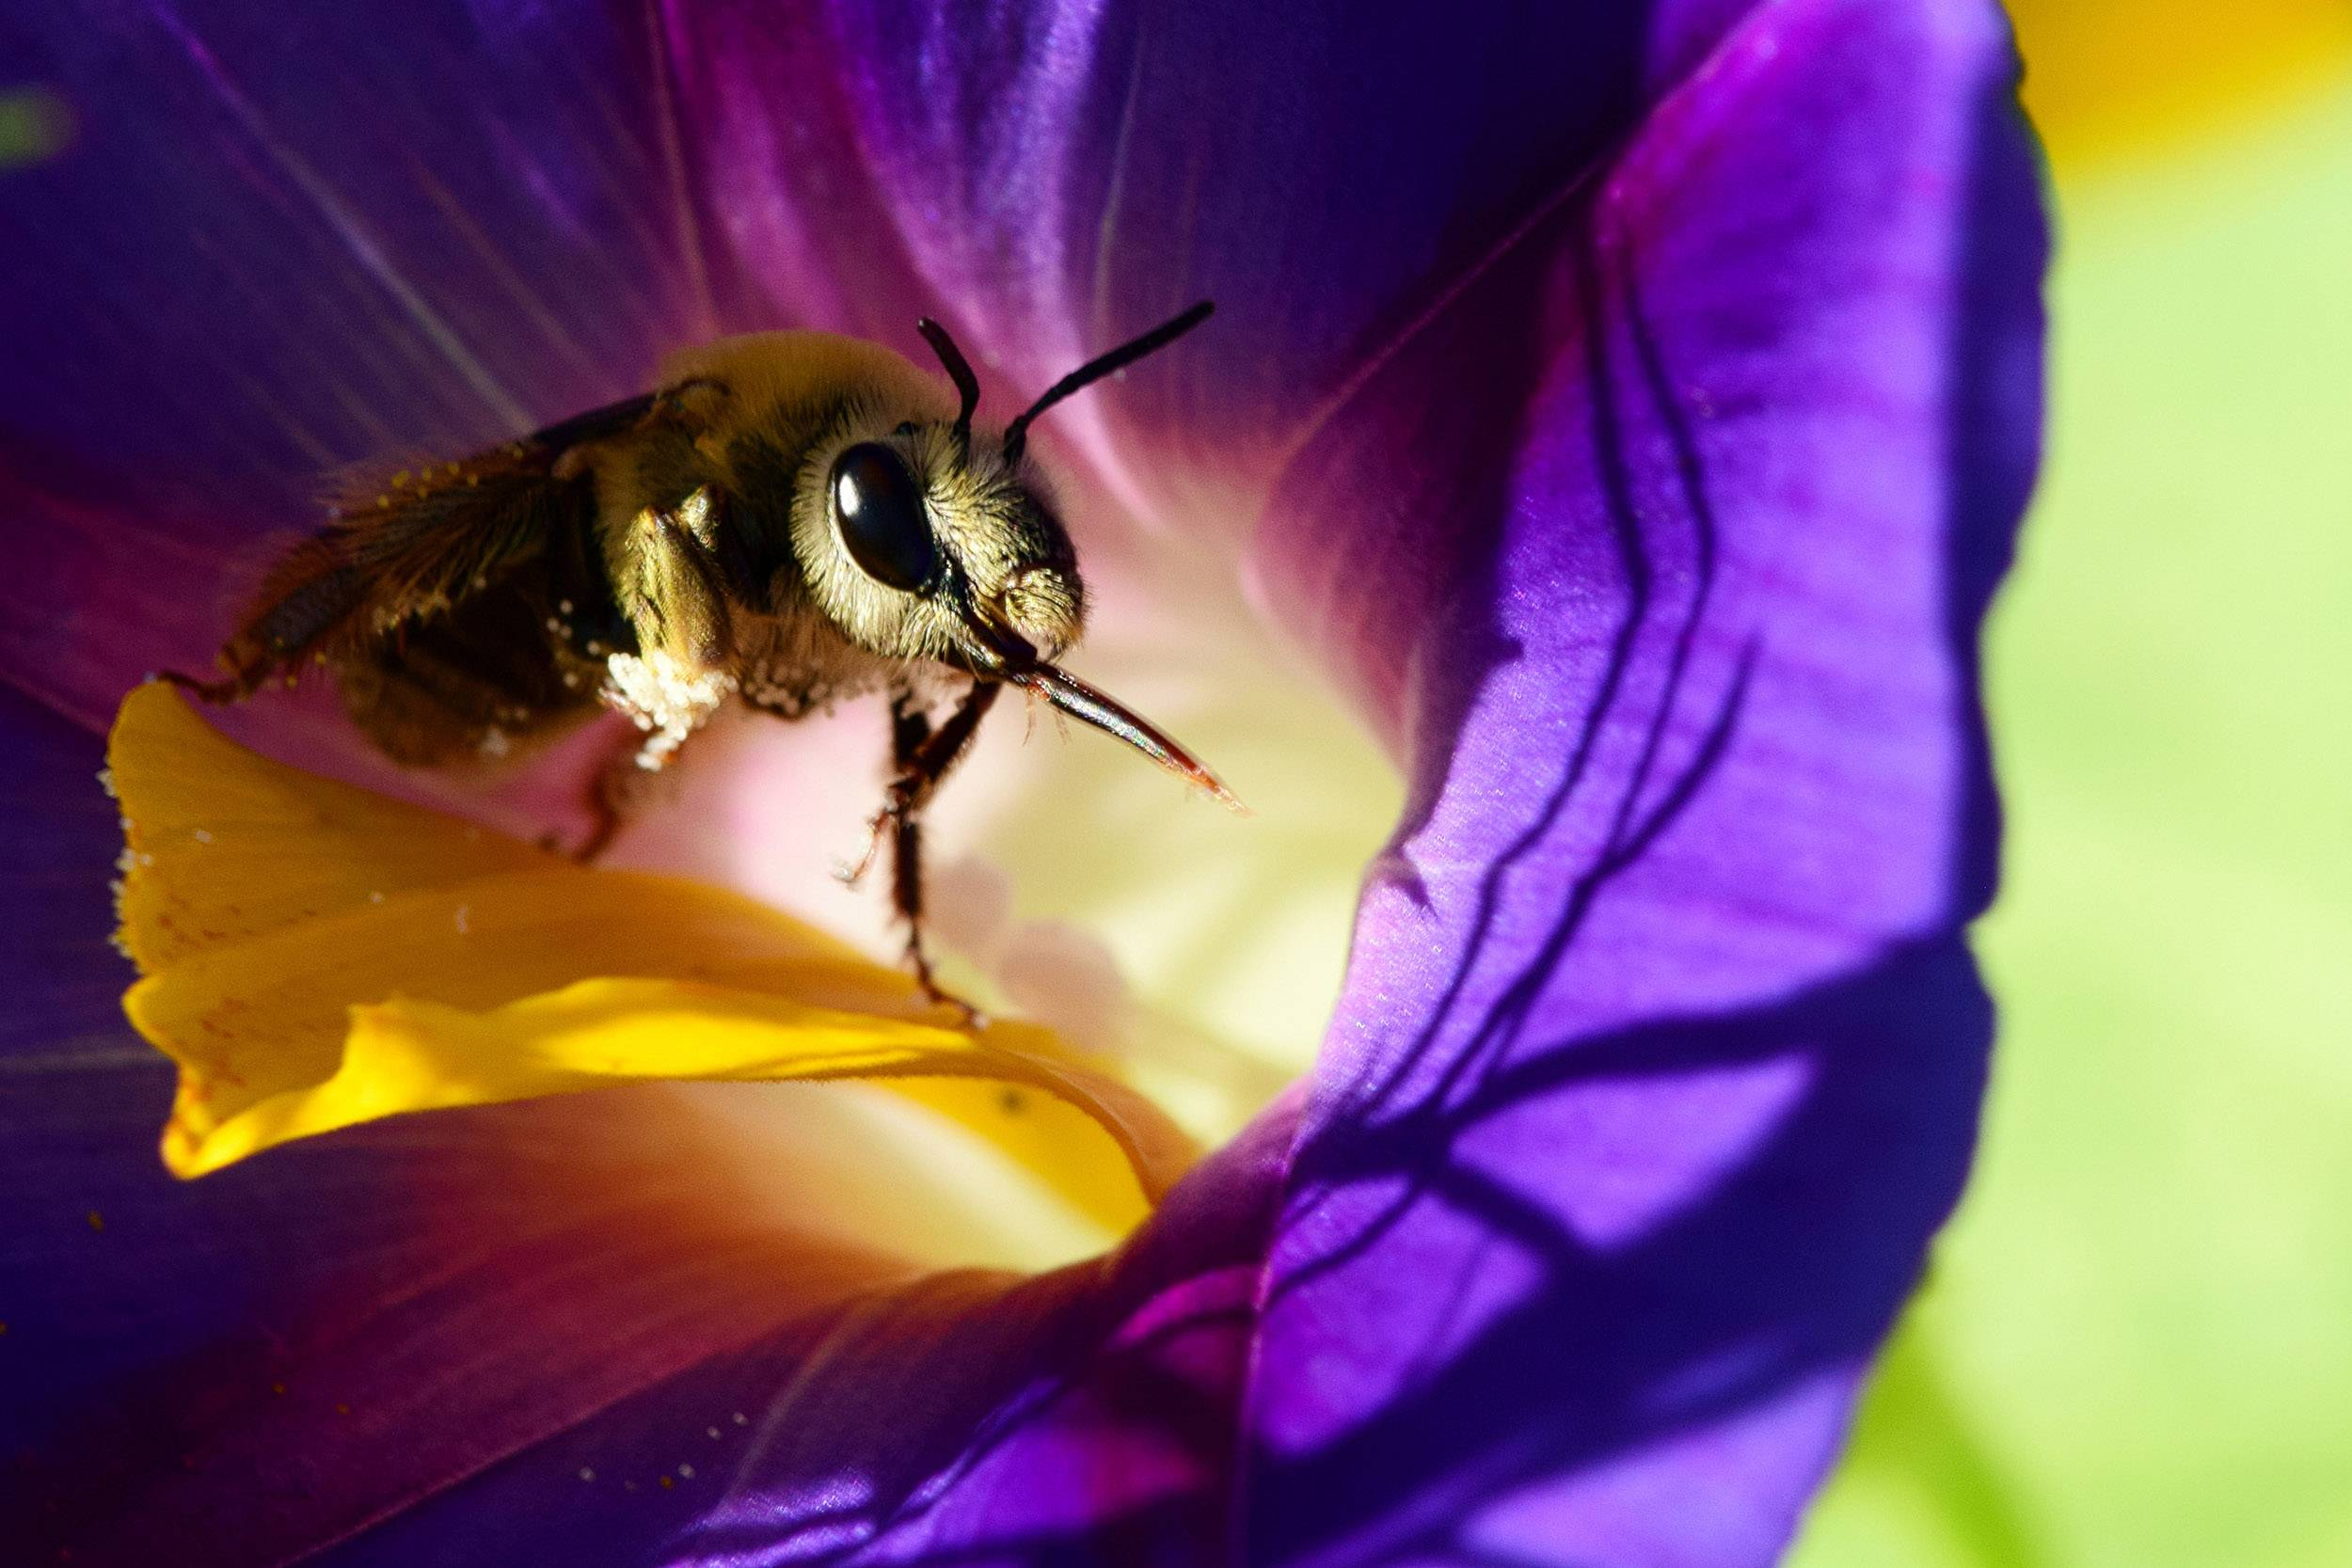 A bee walks around on a yellow petal that had fallen inside a morning glory blossom in a Gurnee garden on Thursday, Aug. 4.